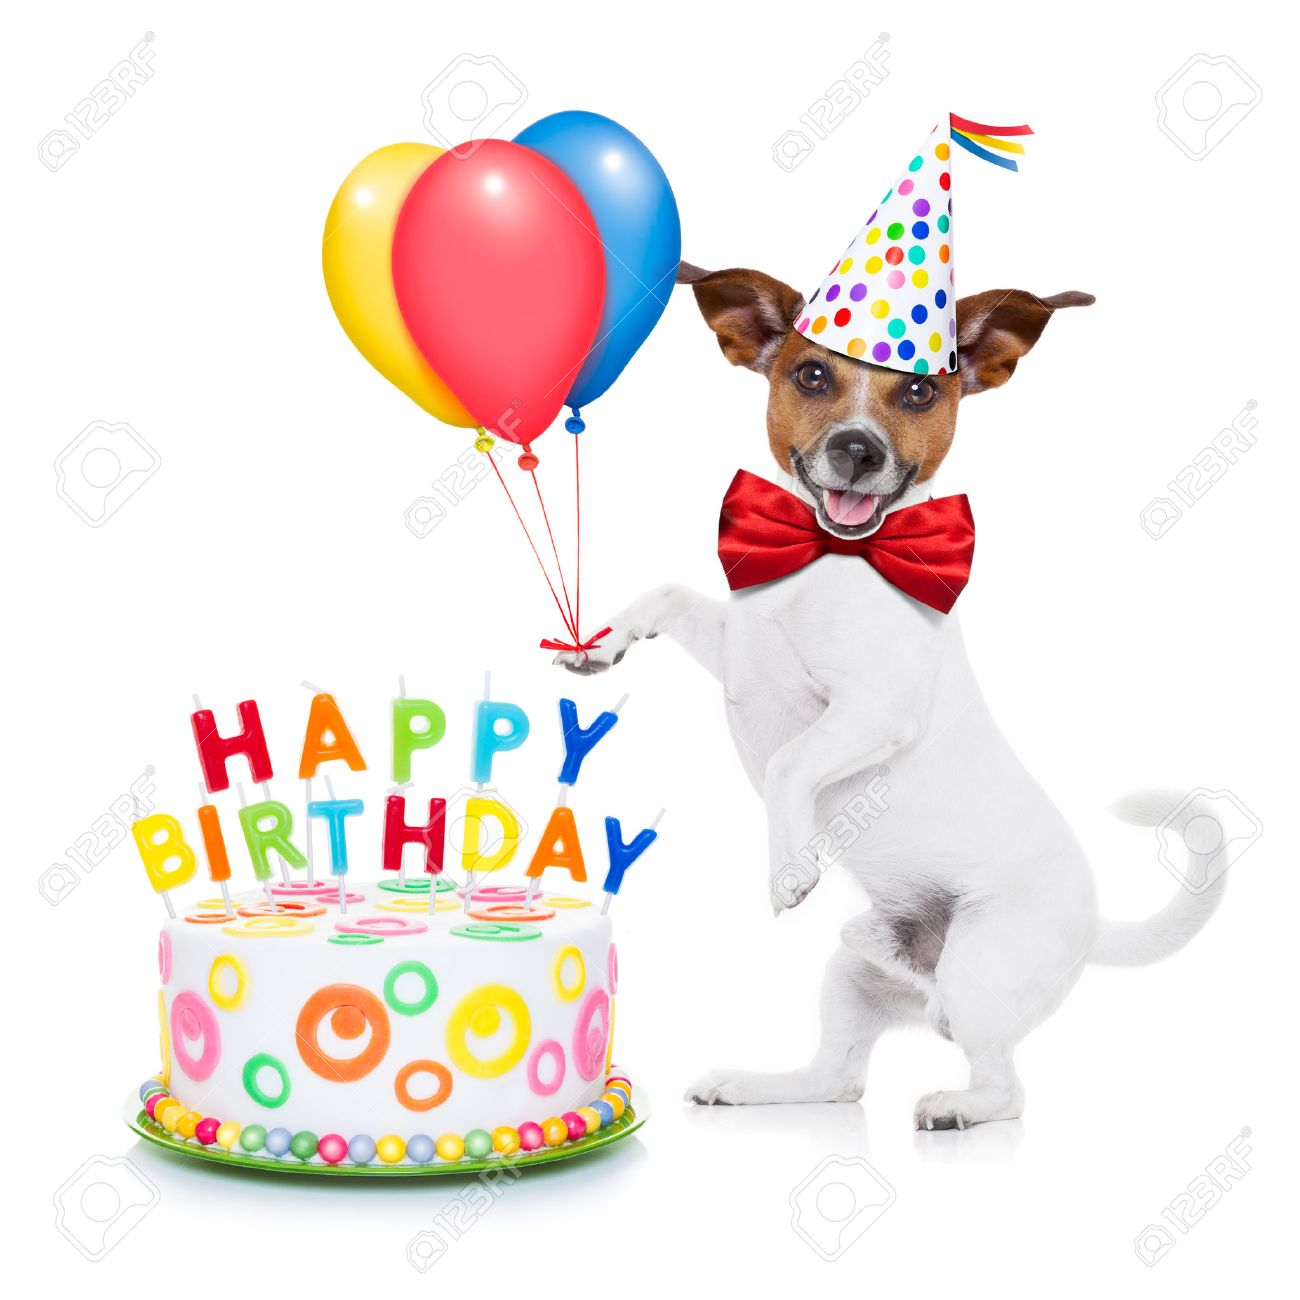 Jack Russell Dog As A Surprise With Happy Birthday Cake Wearing Red Tie And Party